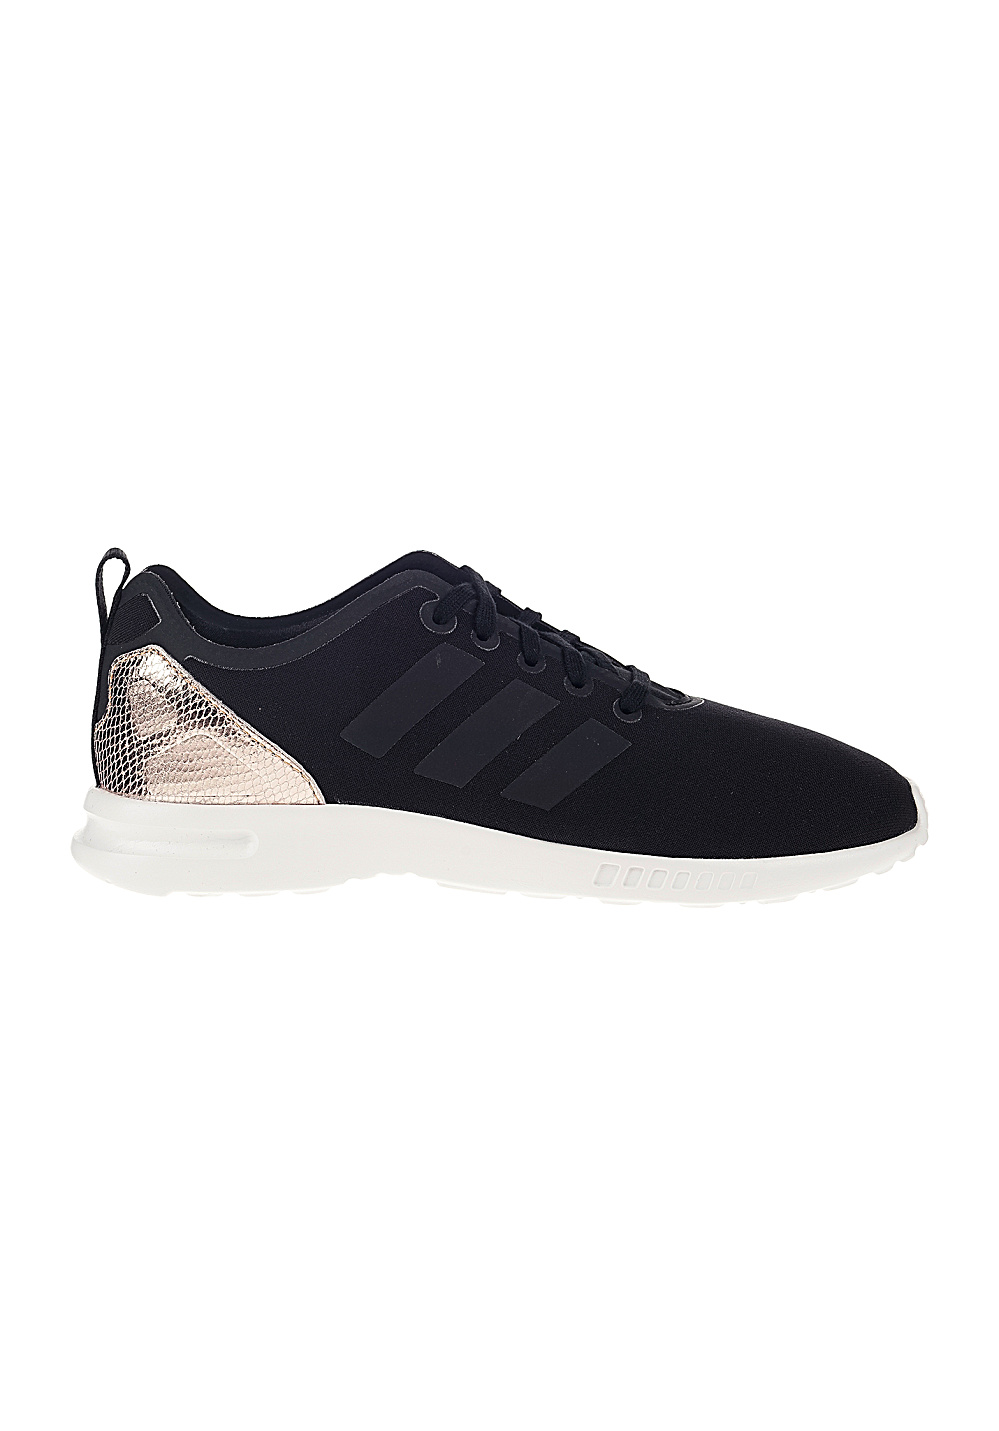 Dein Shop für Action Sports, Streetwear  ADIDAS ZX Flux ADV Smooth -  Sneakers for Women - Black - Pla buy popular 96801 . ... a463459e41